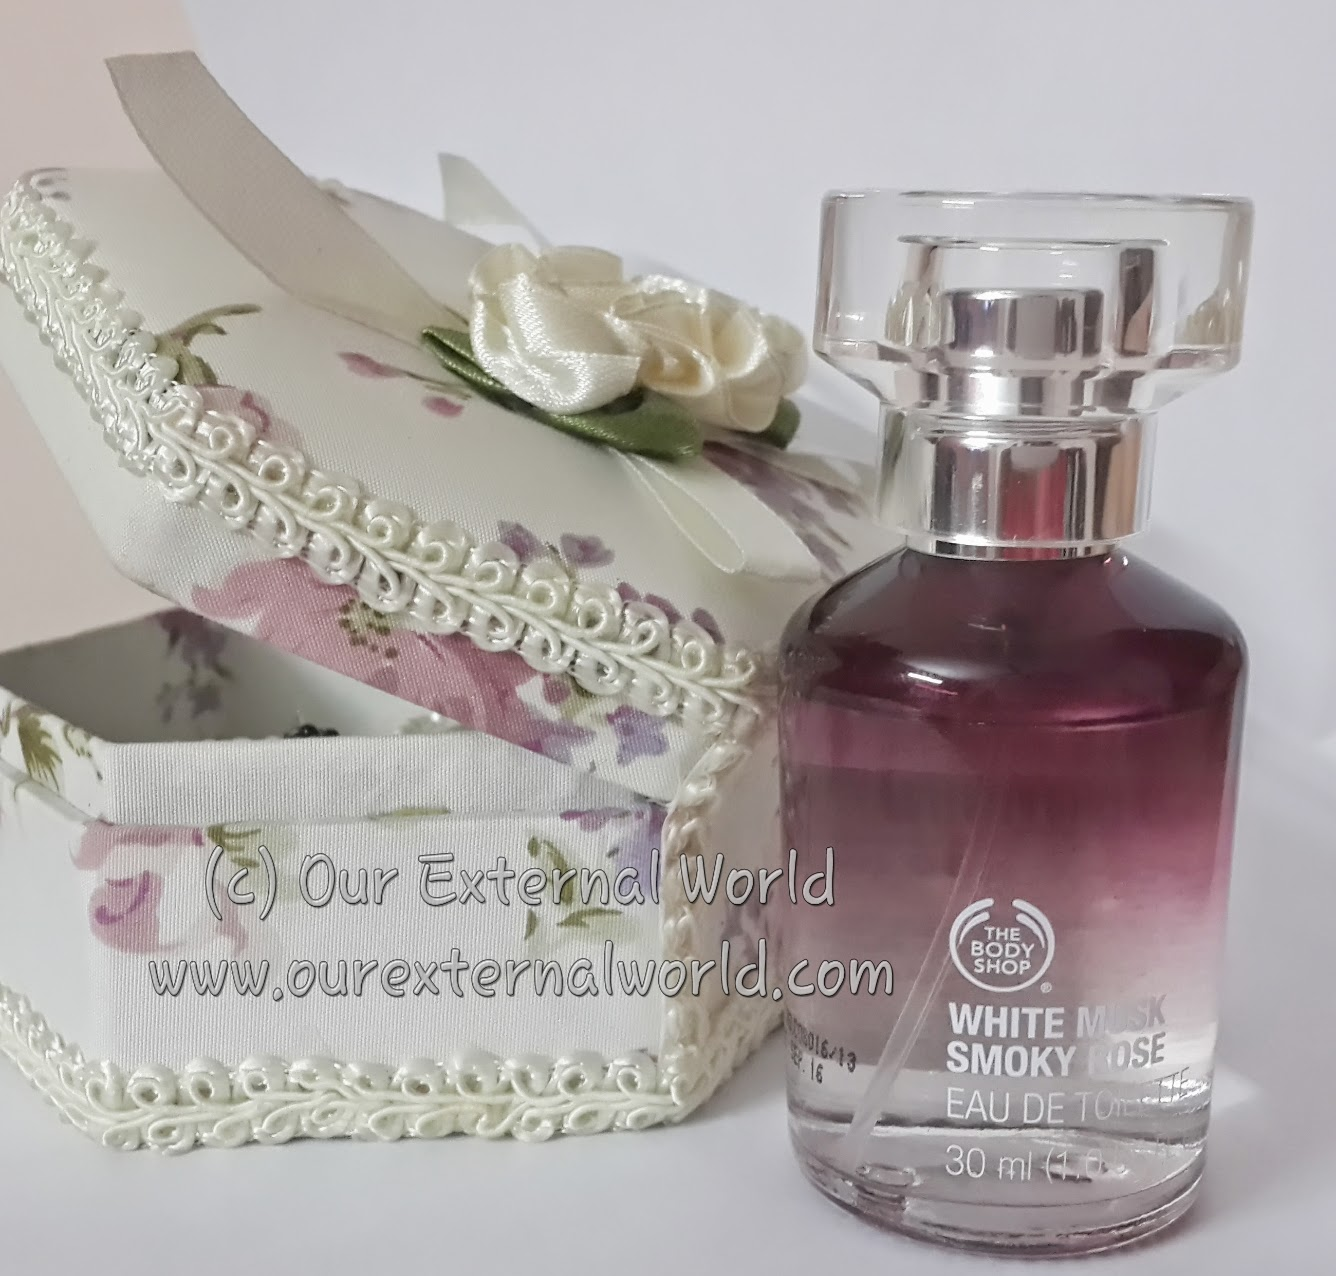 The Body Shop White Musk Smokey Rose EDT- Review